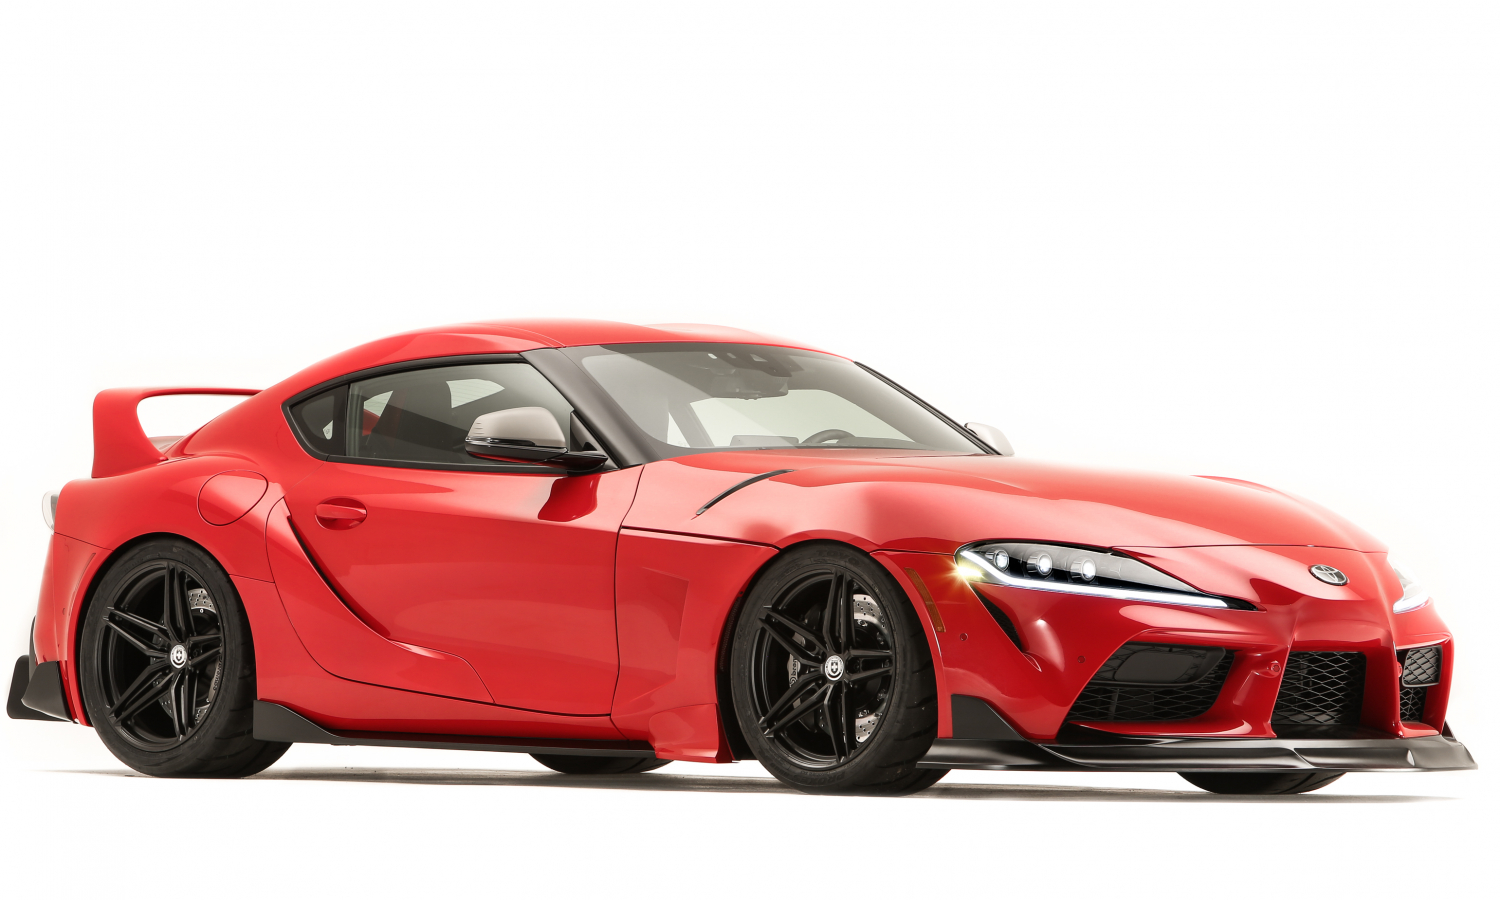 The GR Supra Dominates and TRD Celebrates at SEMA 2019